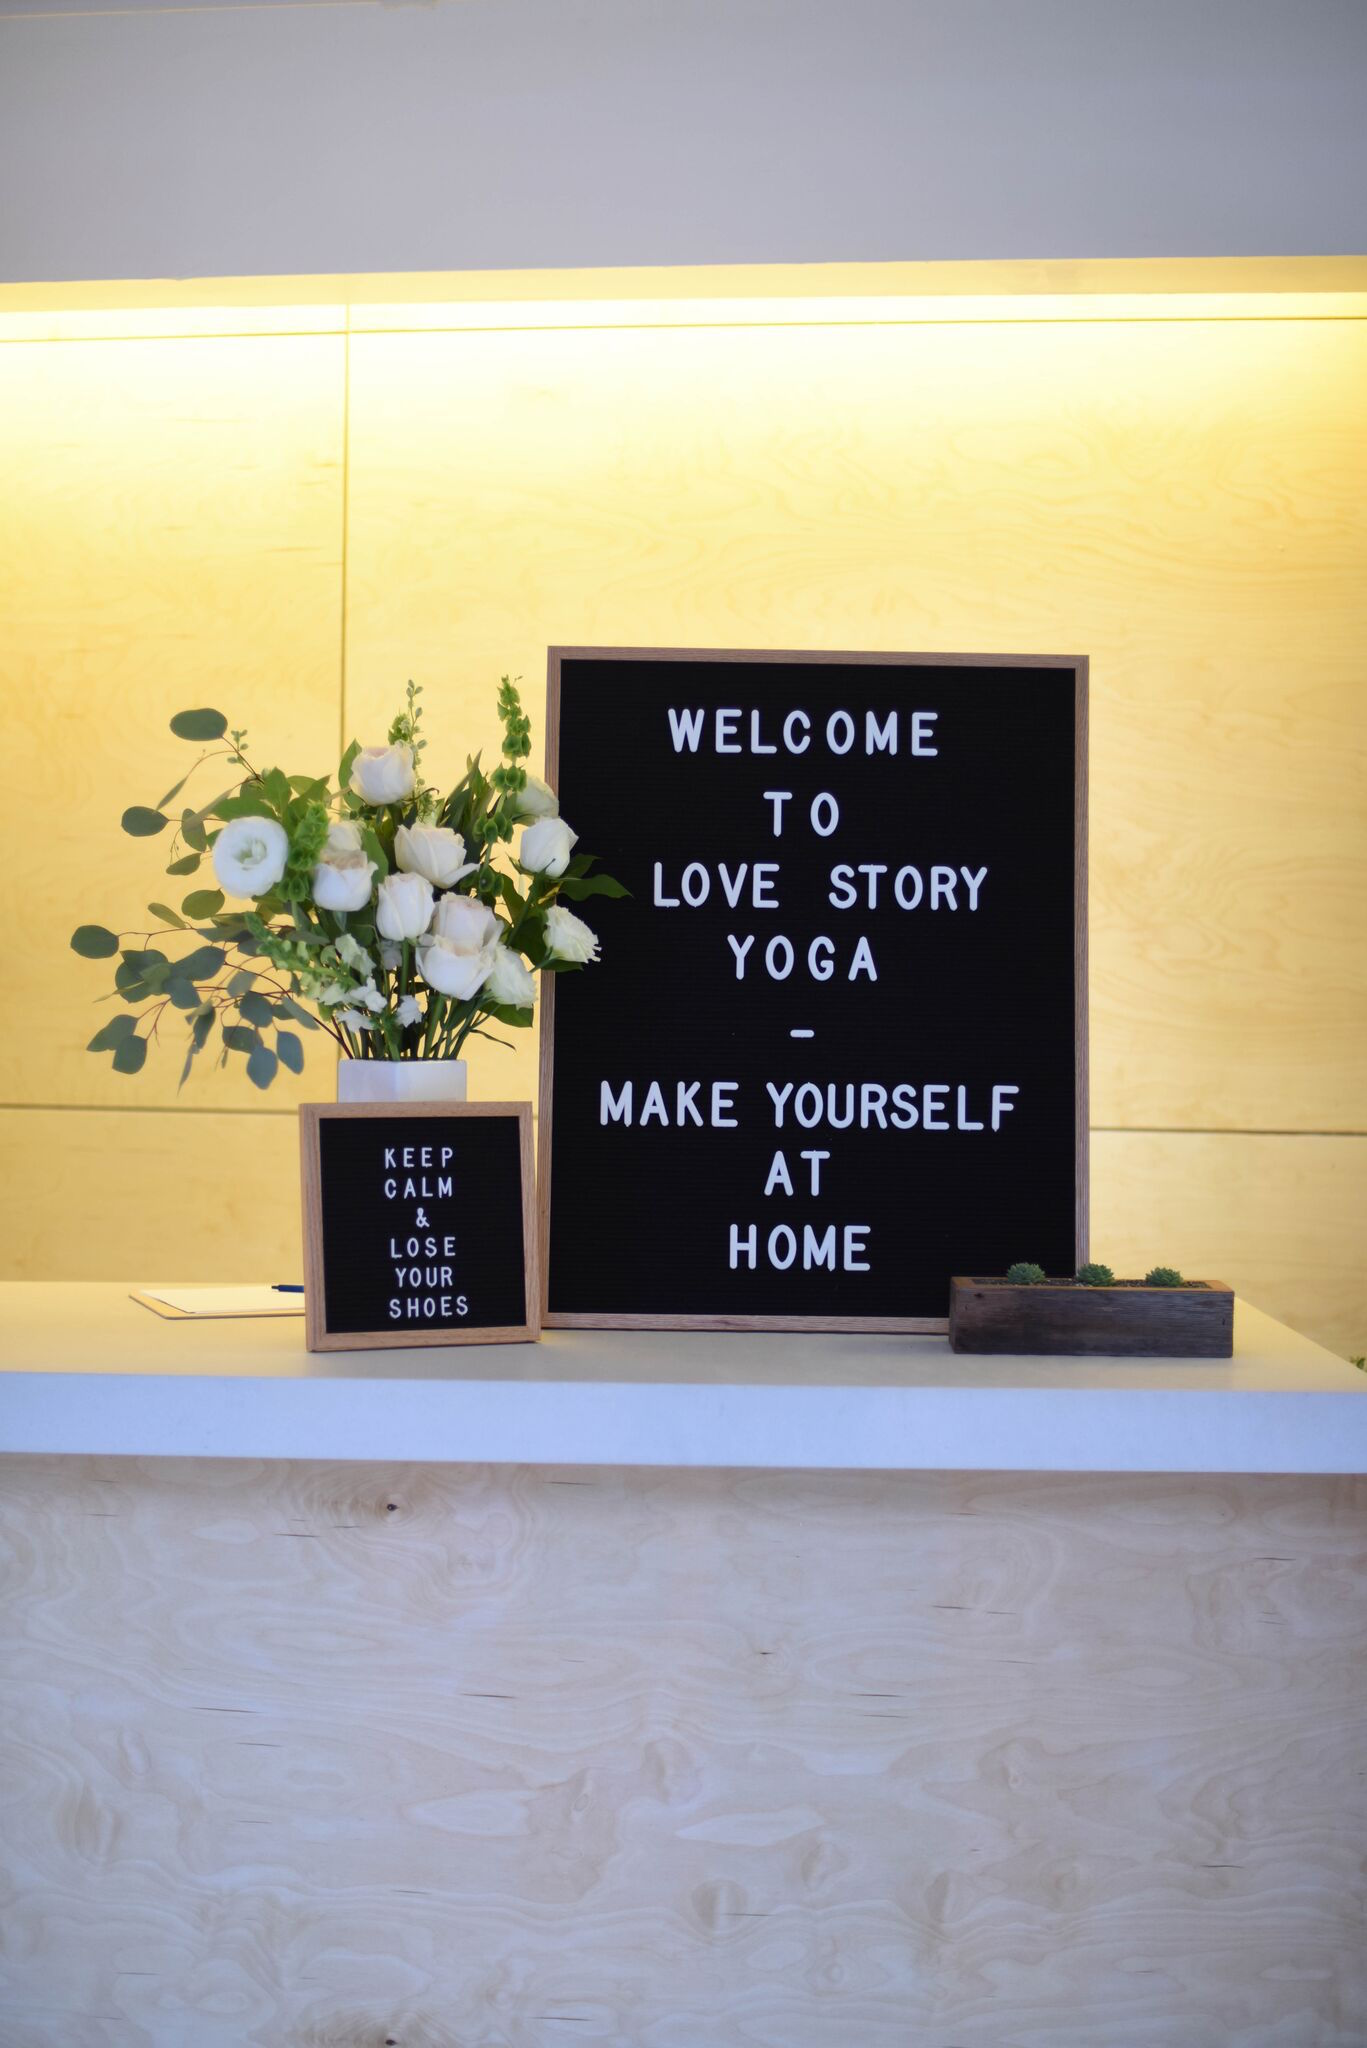 The front desk at Love Story Yoga